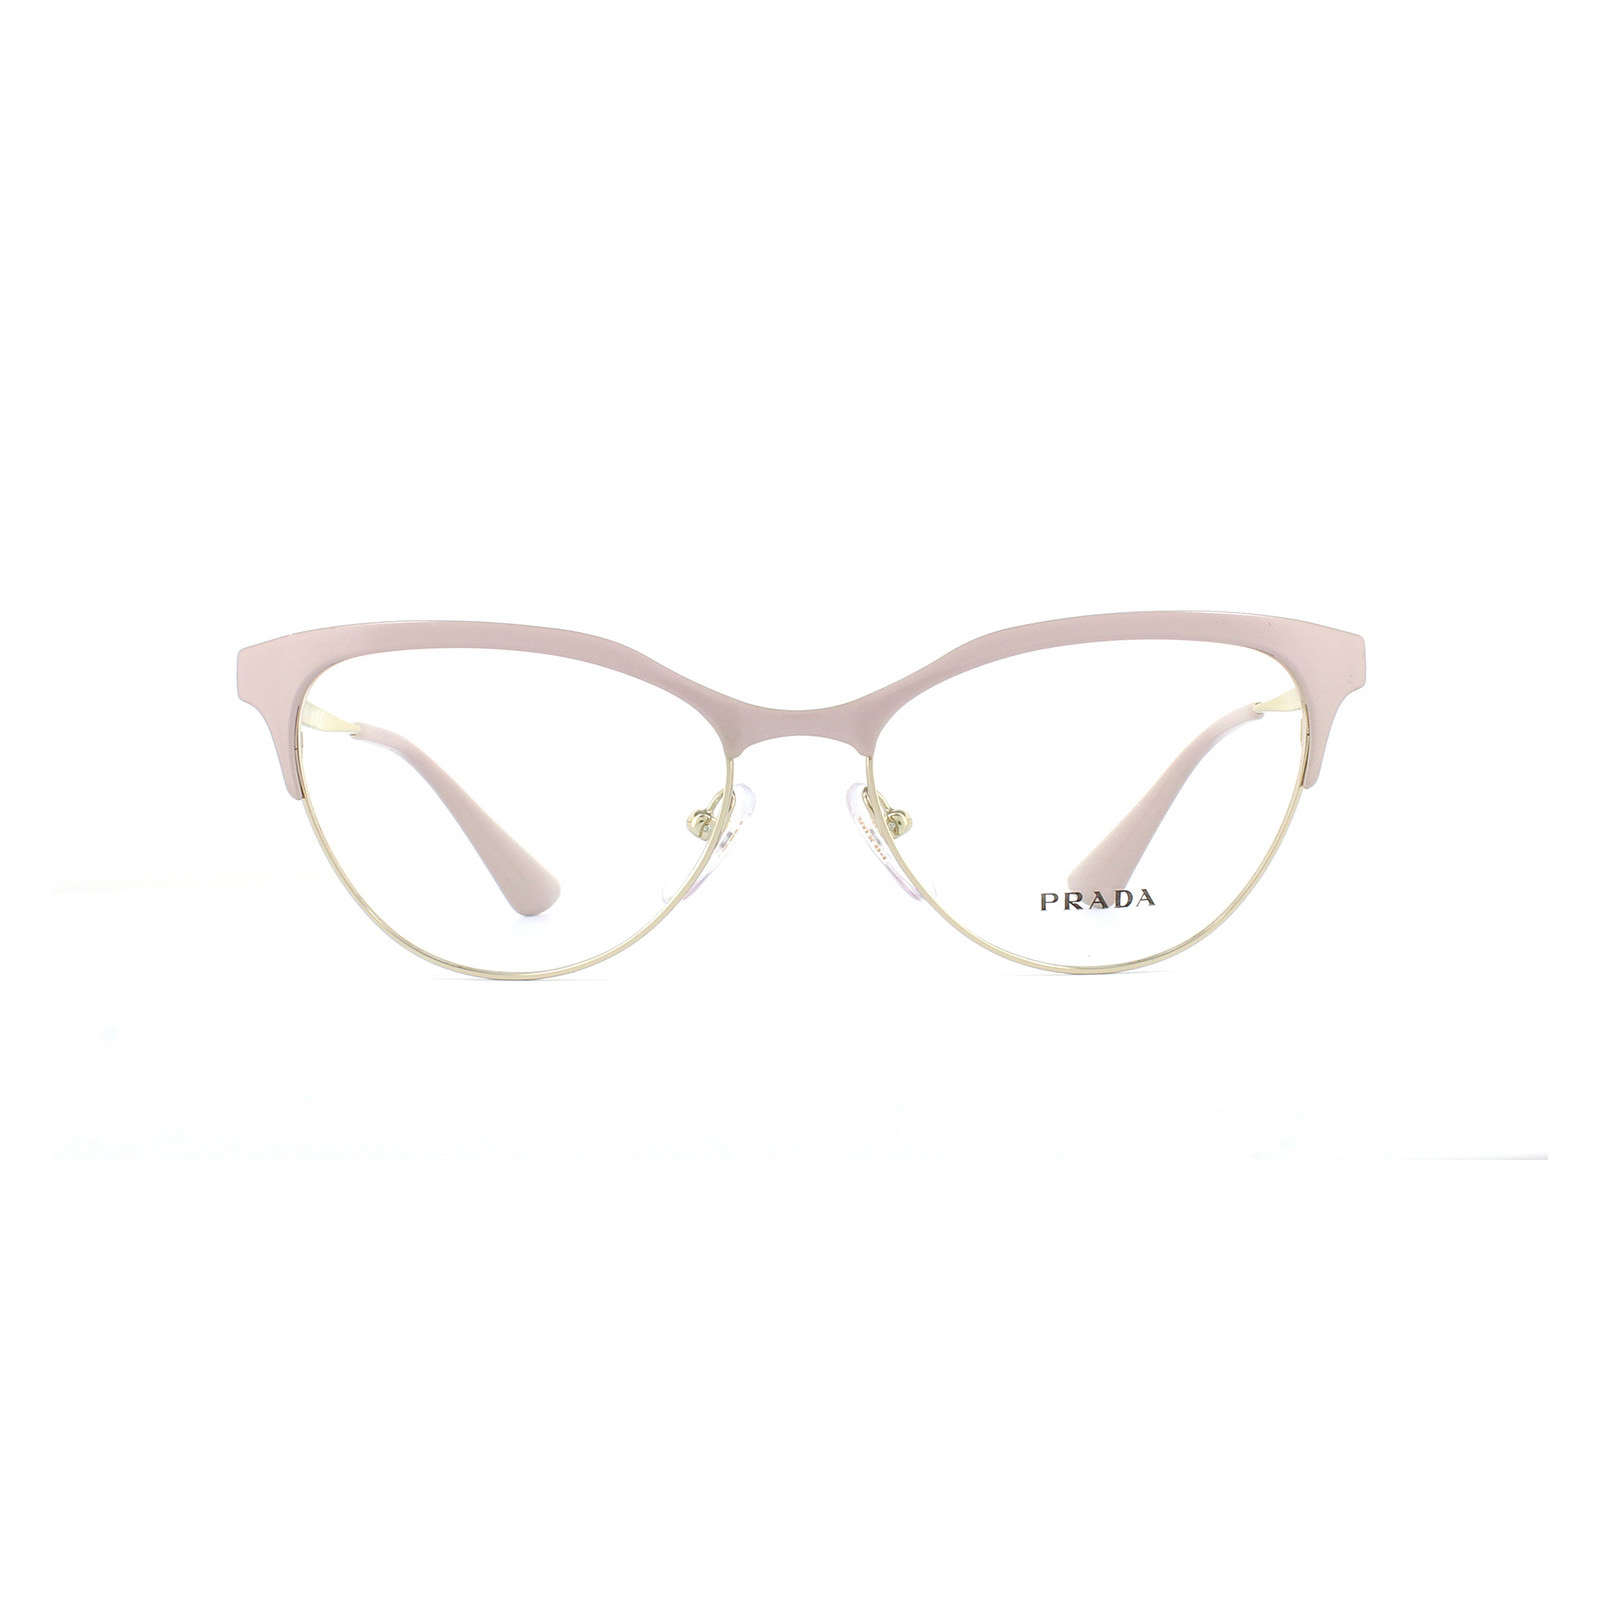 72b74a47a8dd0 ... reduced hot prada sunglasses pink frame sentinel prada glasses frames  55sv uf51o1 pink pale gold womens